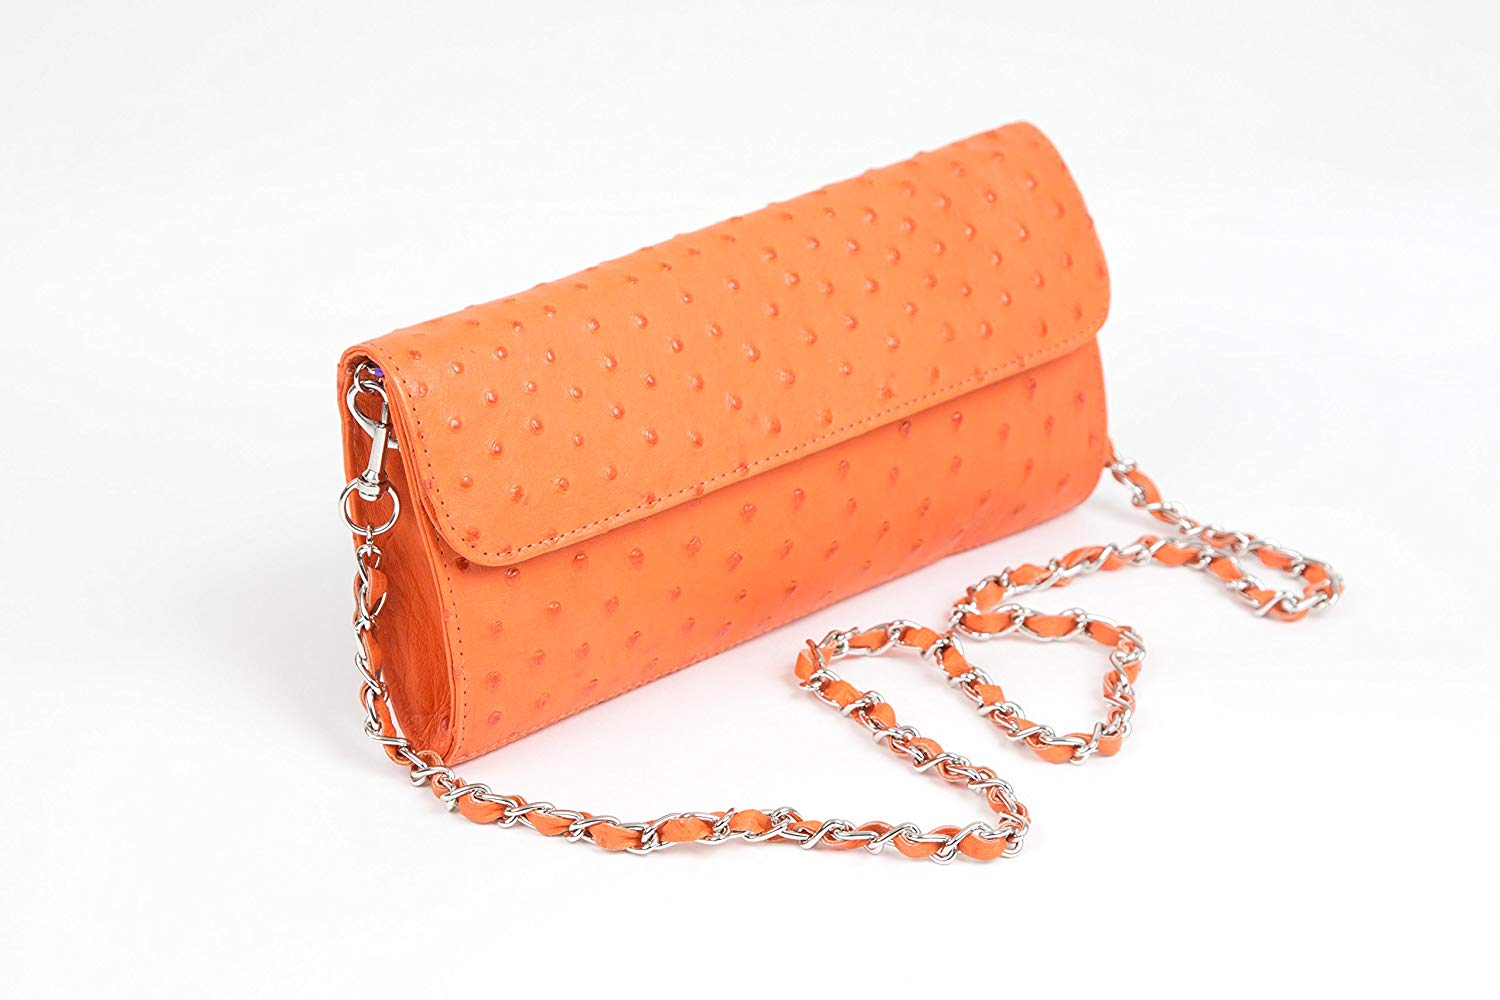 Get Quotations Karoo Collection Tokai Tangerine Orange 100 Authentic Free Range Ostrich Leather Handbag Made In South